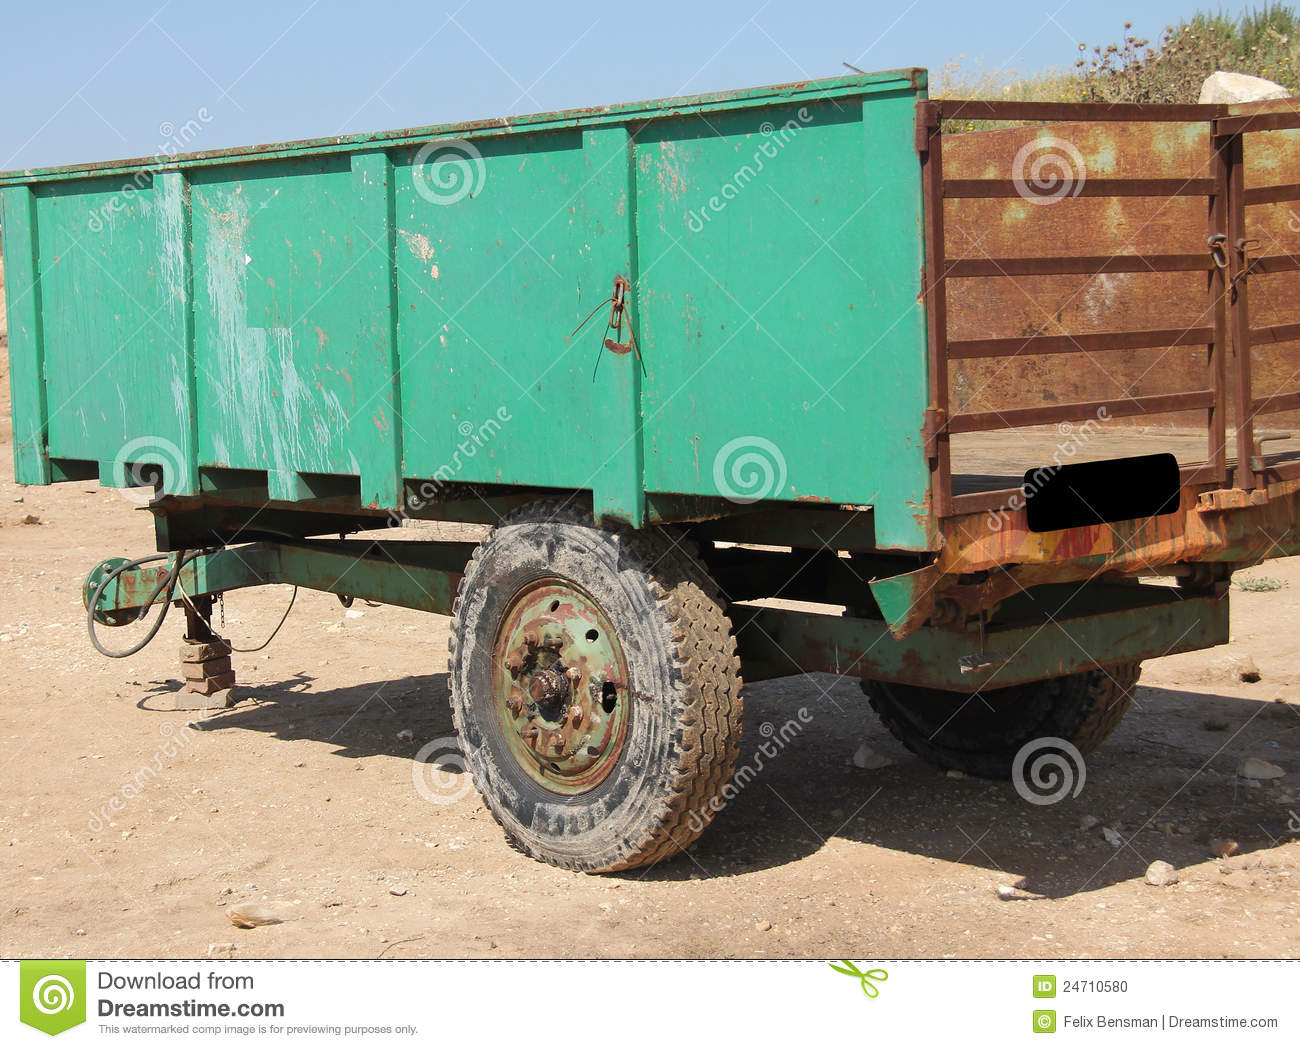 Tractor Trailer Stock : Old tractor trailer stock photo image